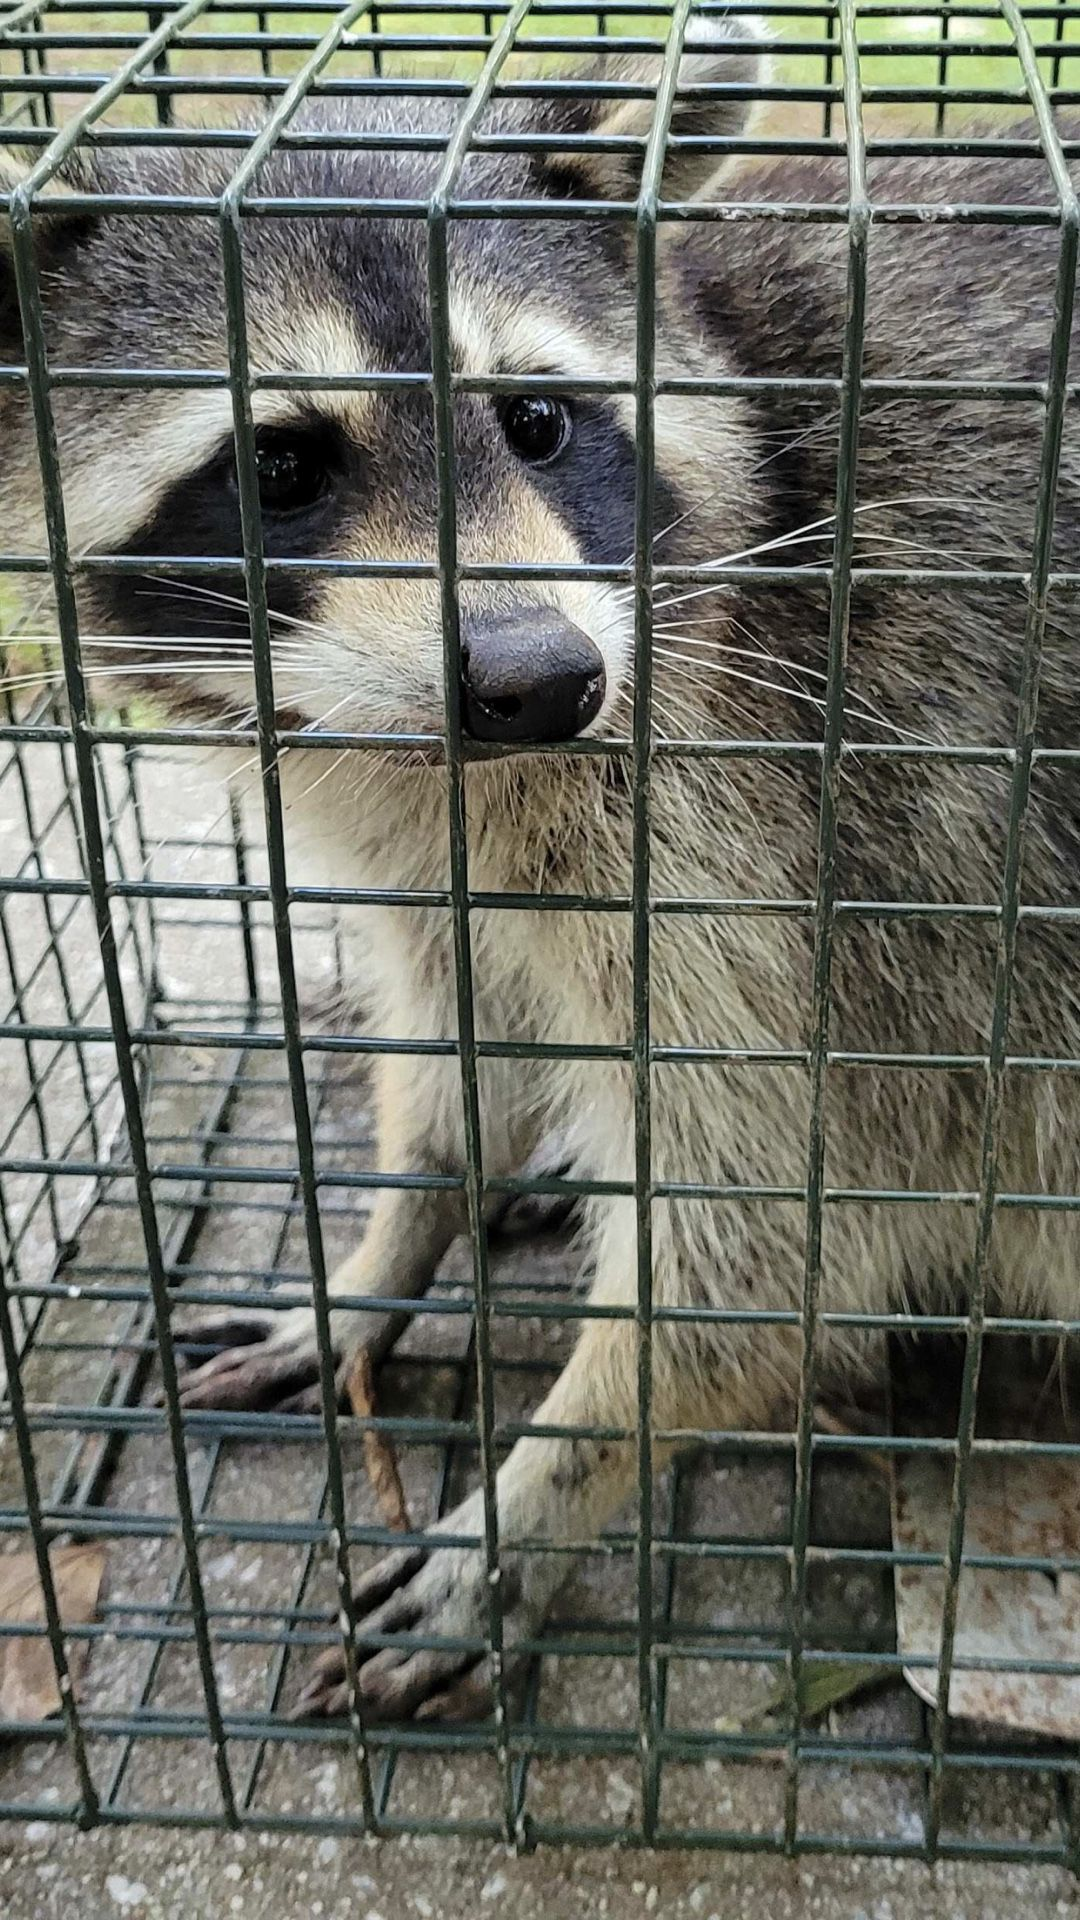 WILDLIFE  AND DEAD ANIMALS REMOVAL   Any wildlife issues rats snakes raccoons possums give me a call I'll take care of it